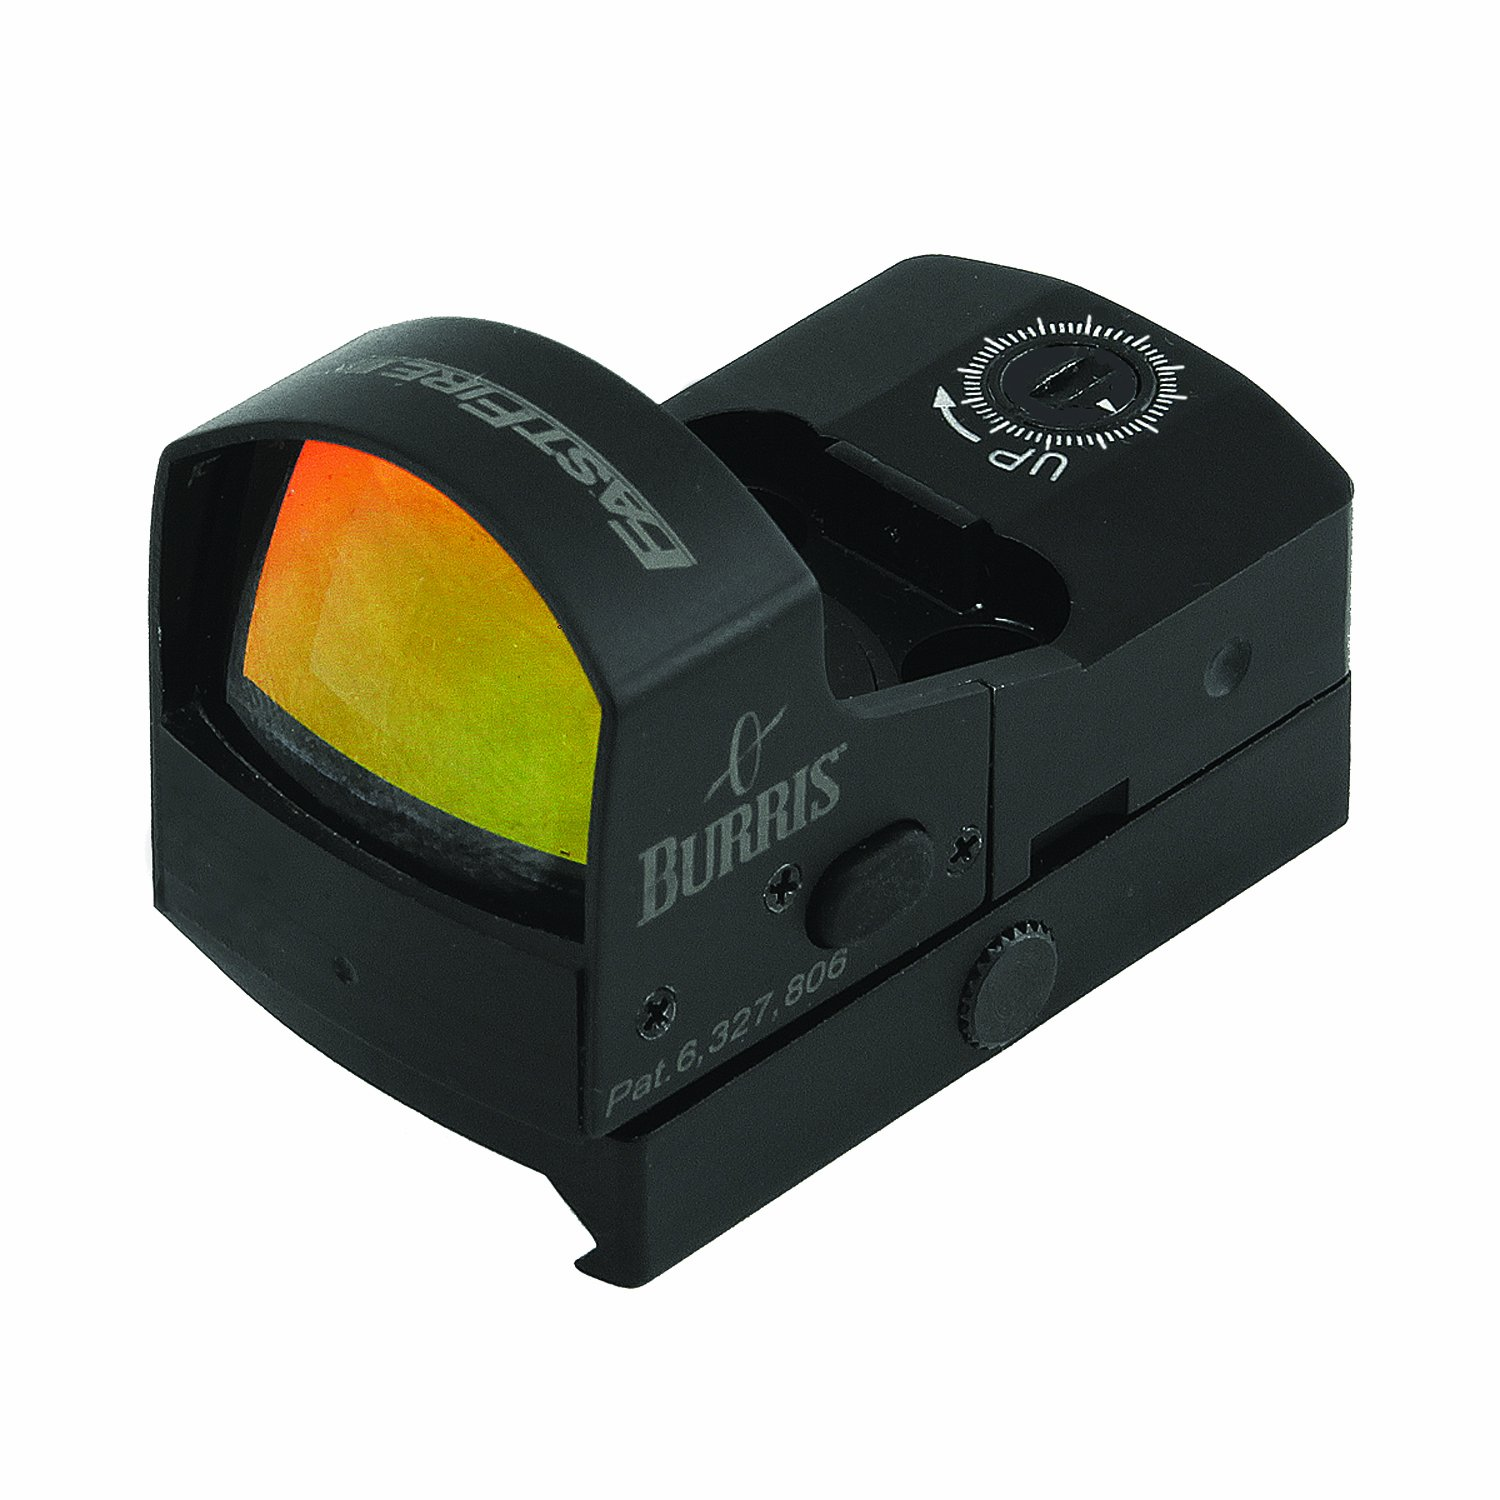 Burris 300234 Fastfire III with Picatinny Mount 3 MOA Sight (Black) by Burris